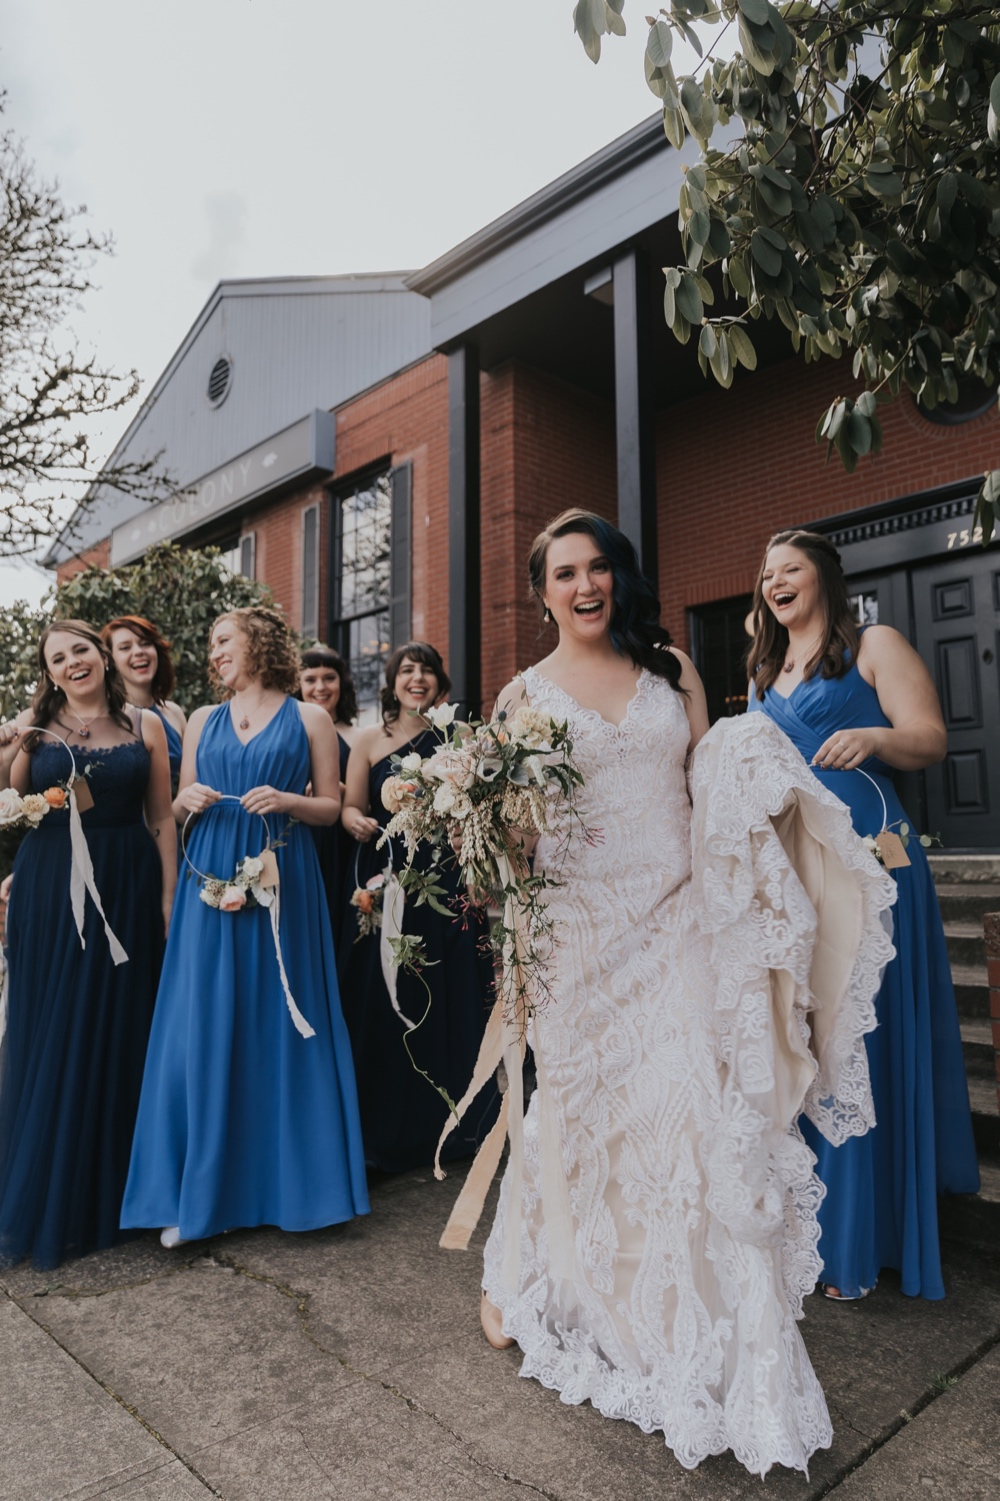 045_Katie&Roy3.23.19-1800_the-colony-wedding-venue_best-portland-wedding-photographers_downtown-portland-wedding-photographers_-_portland-wedding-photographers-prices_the-colony-wedding-venue-portland.jpg